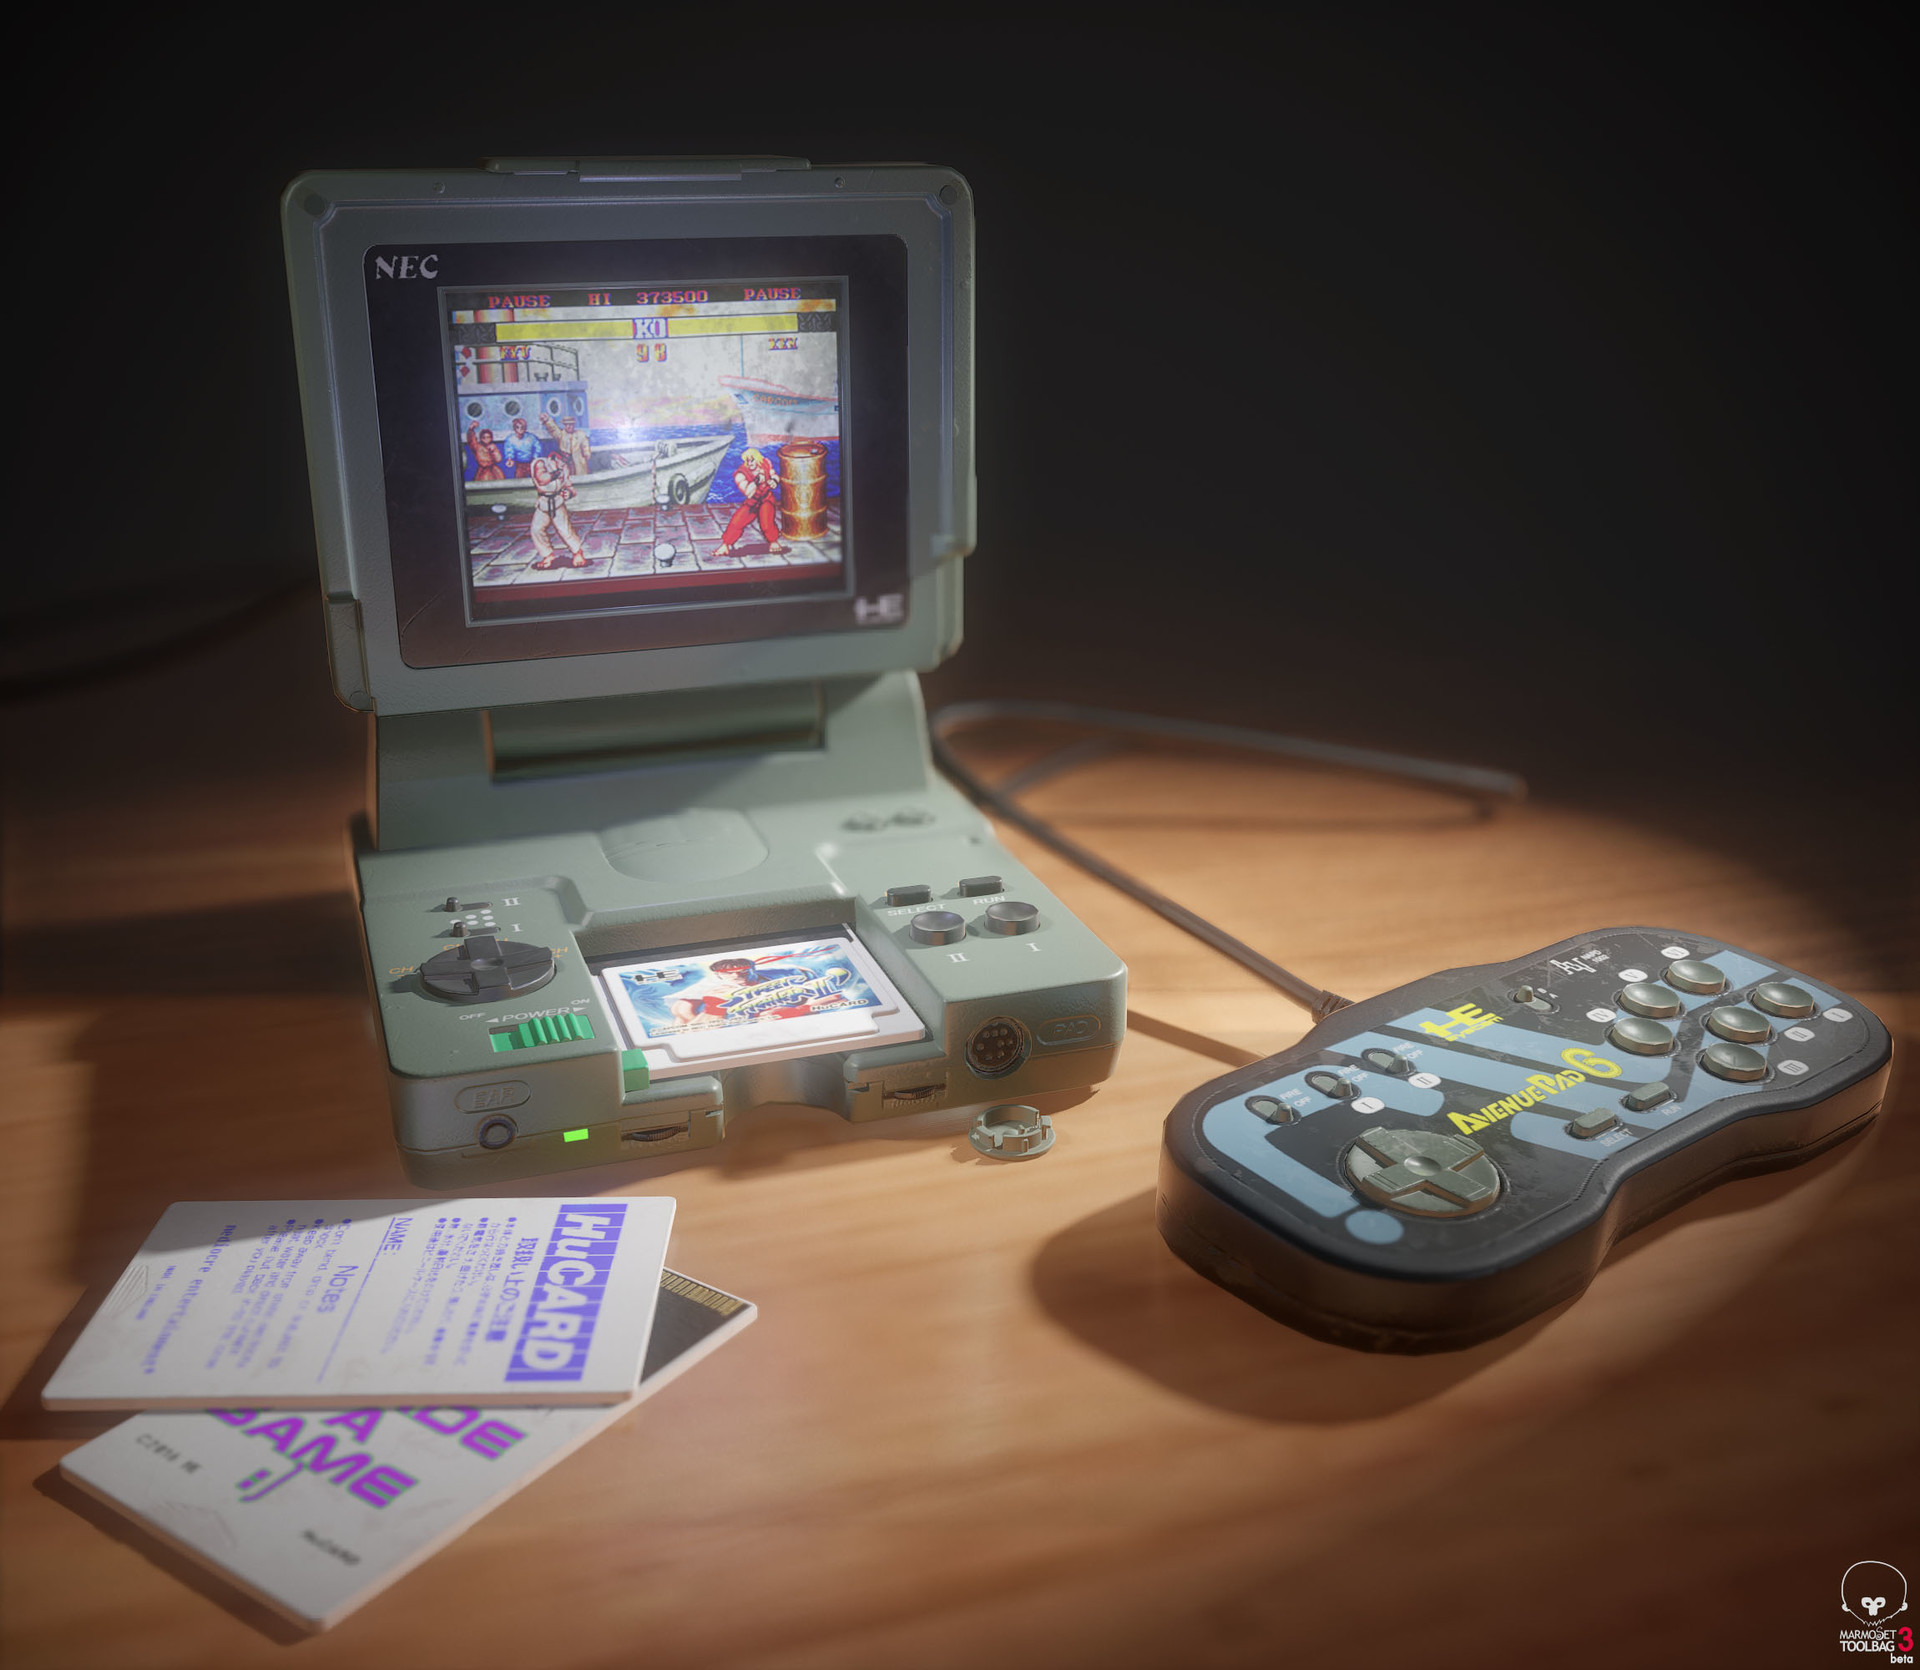 ArtStation - Pc Engine LT With Street Fighter 2, stephen dalzell